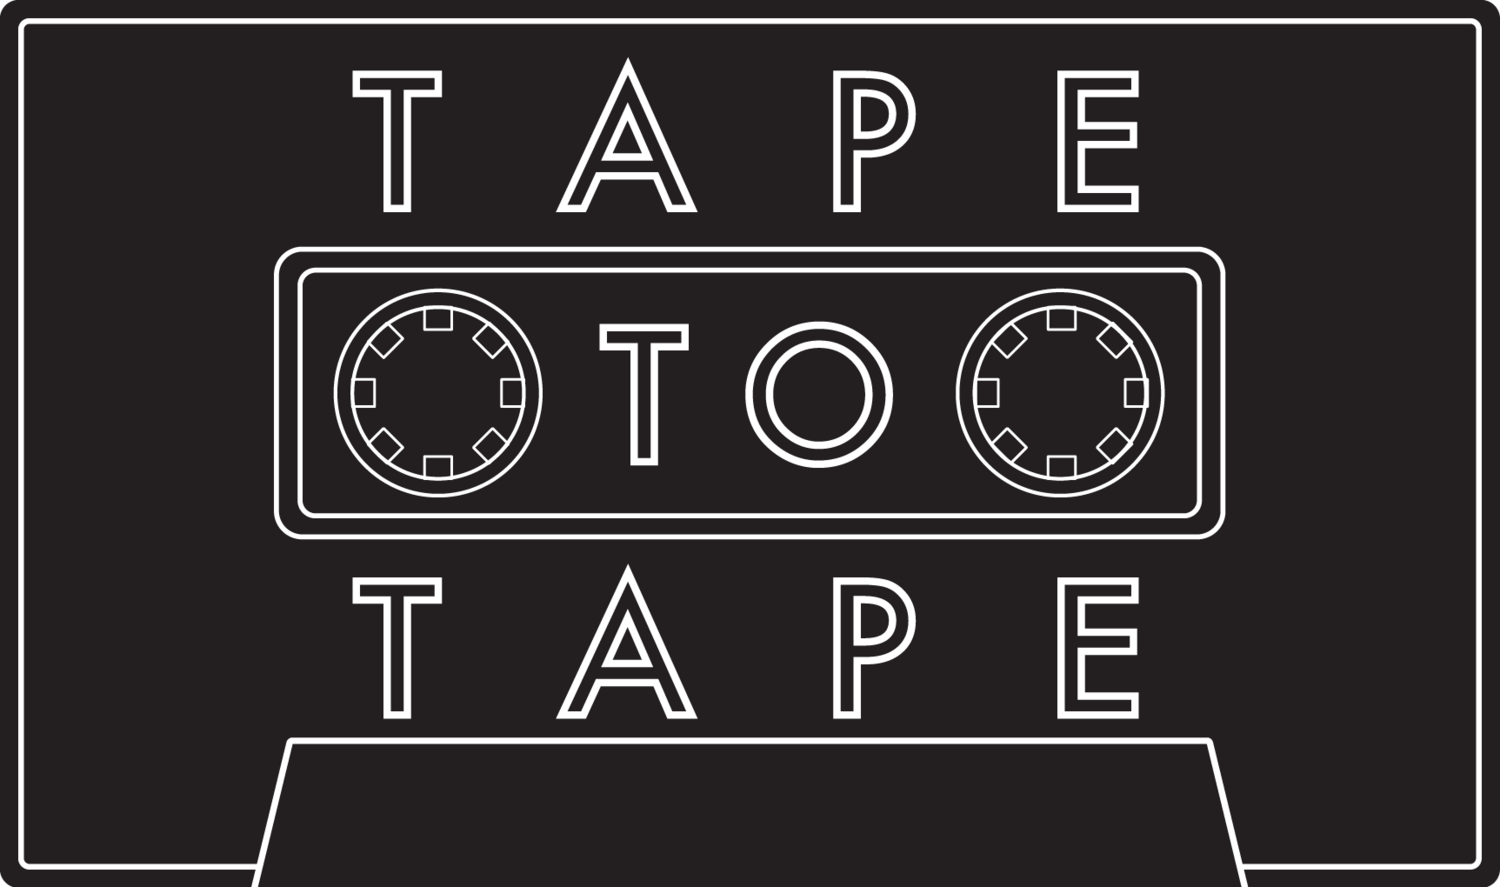 Tape to Tape Music